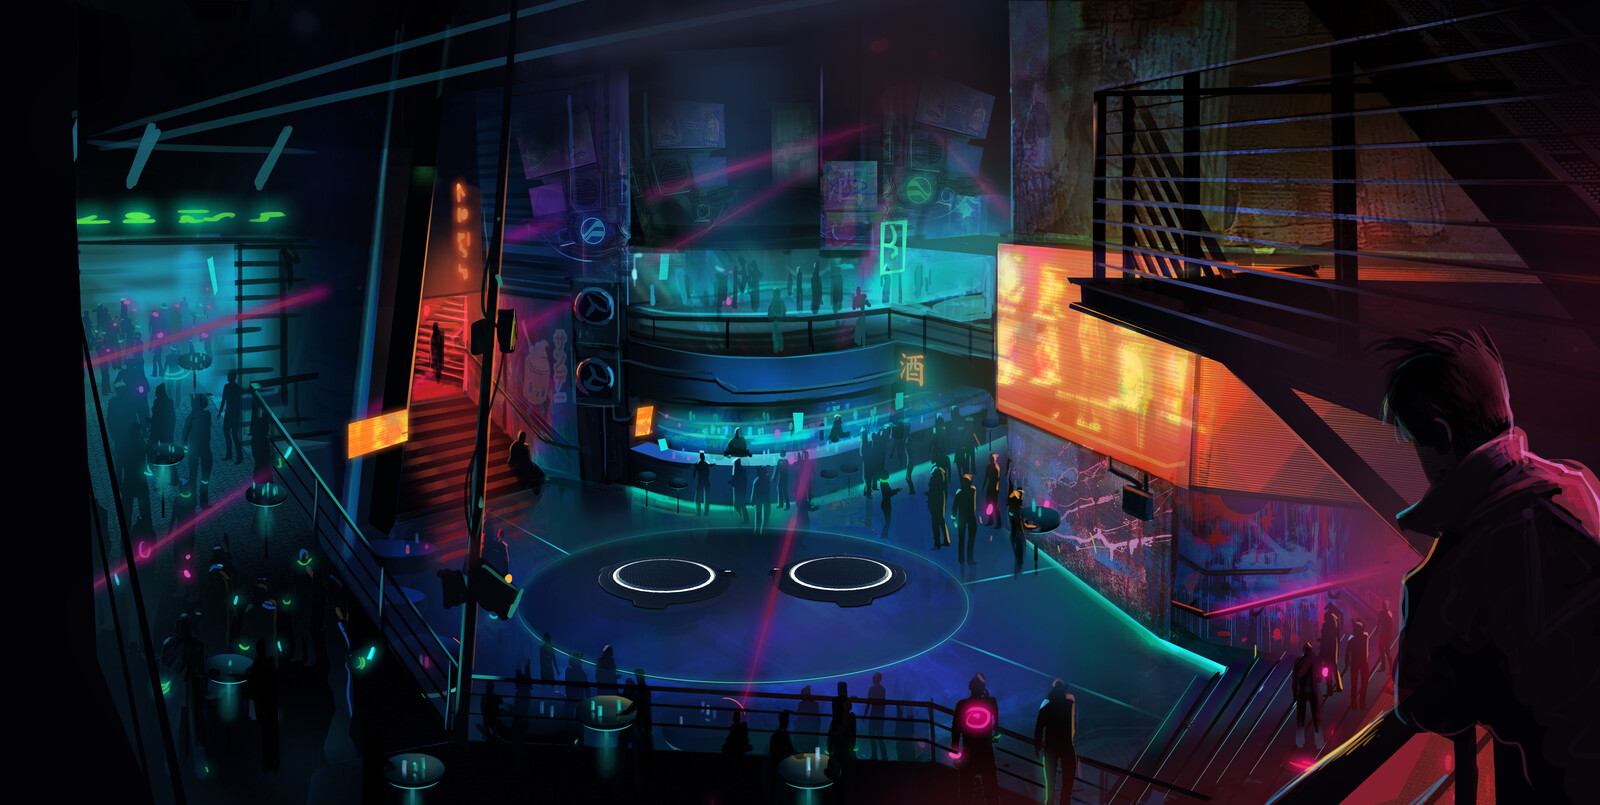 Lobby concept art by Ben Ward